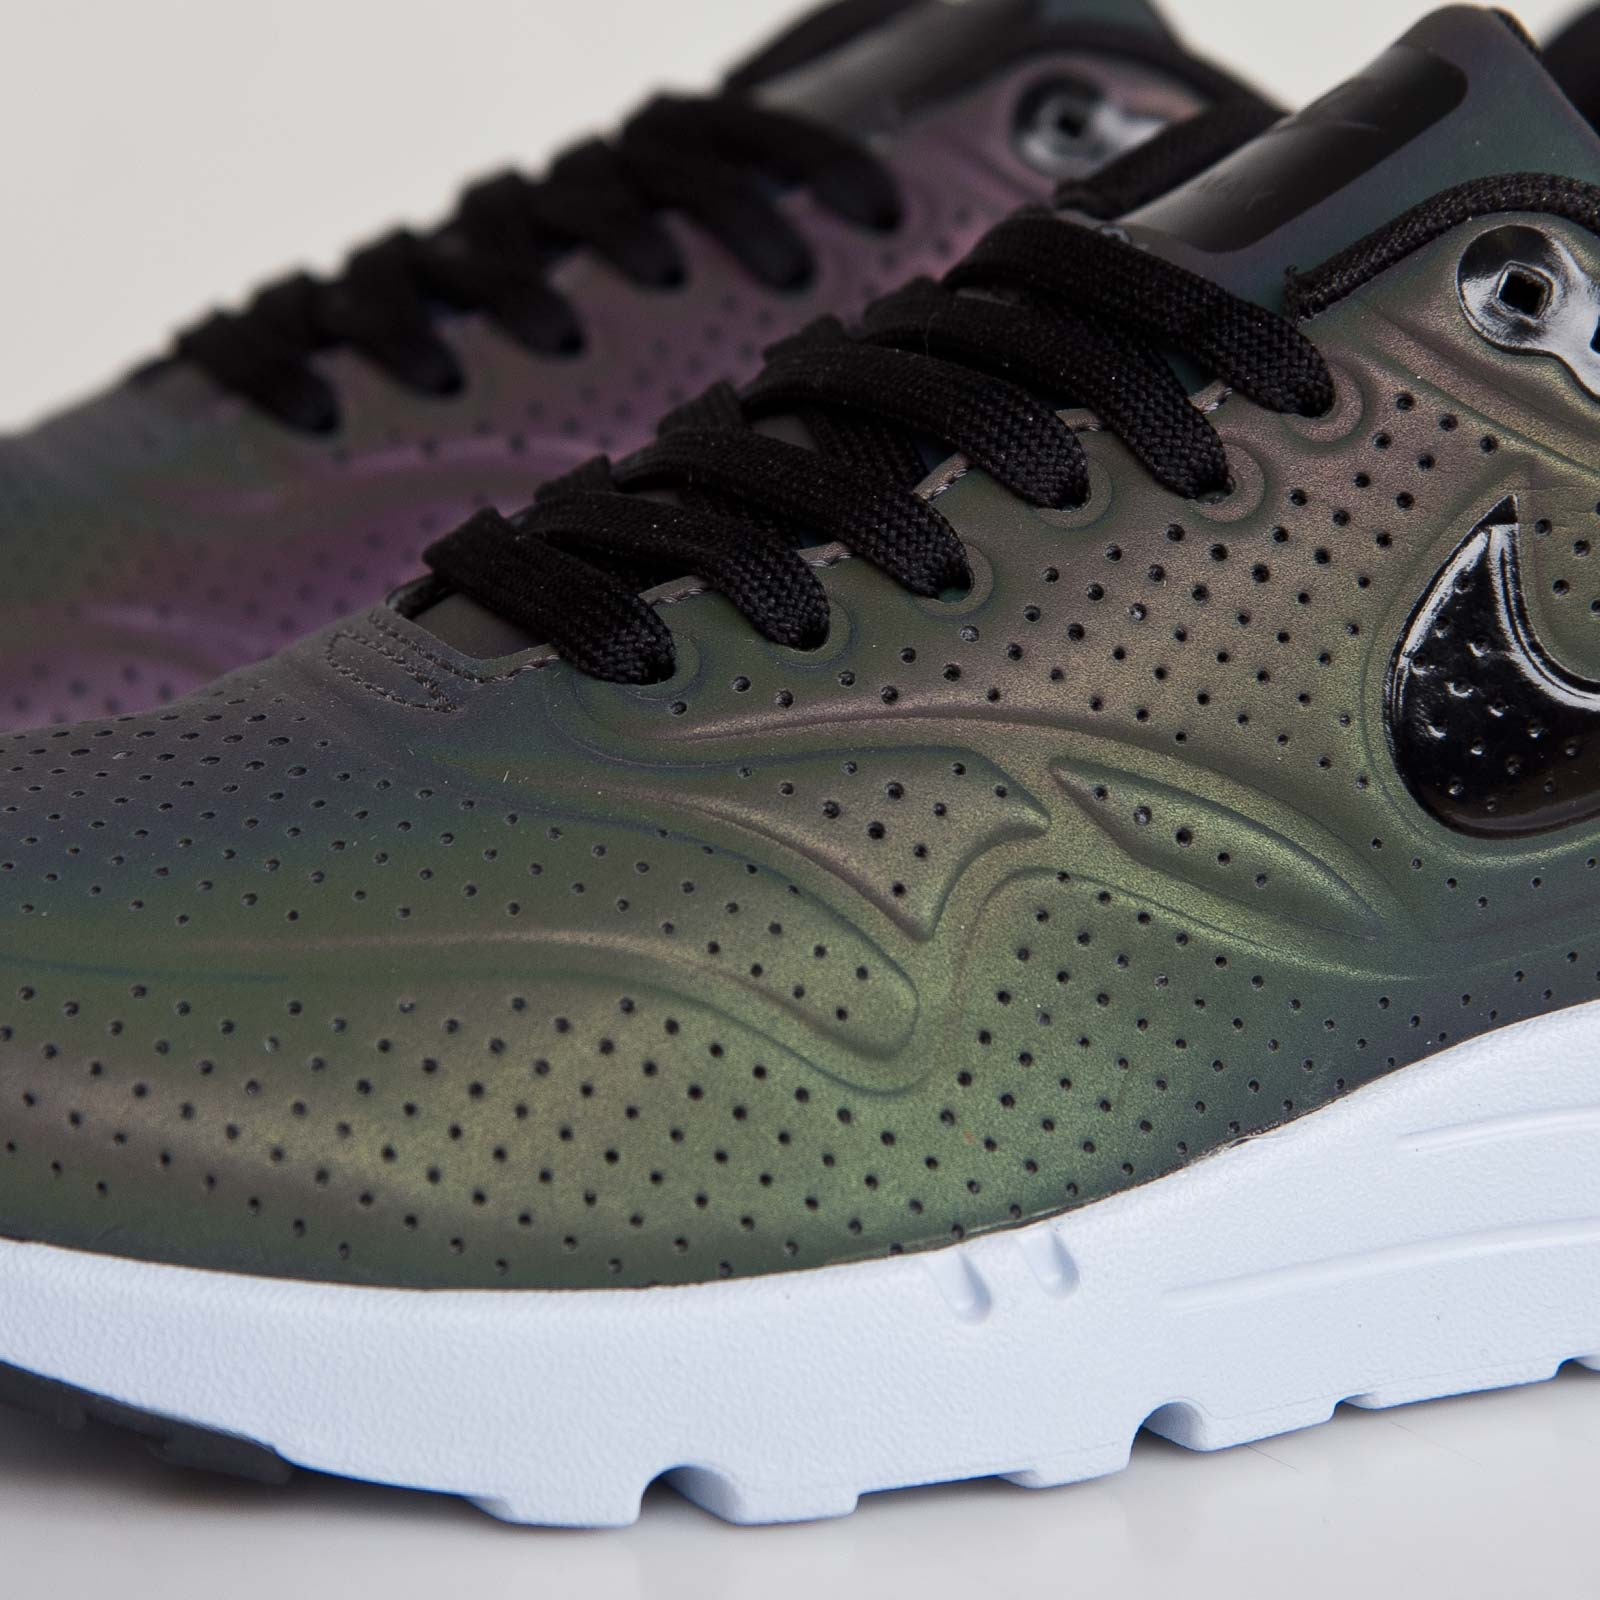 Nike Air Max 90 Ultra Moire QS *Holographic Pack* in Deep